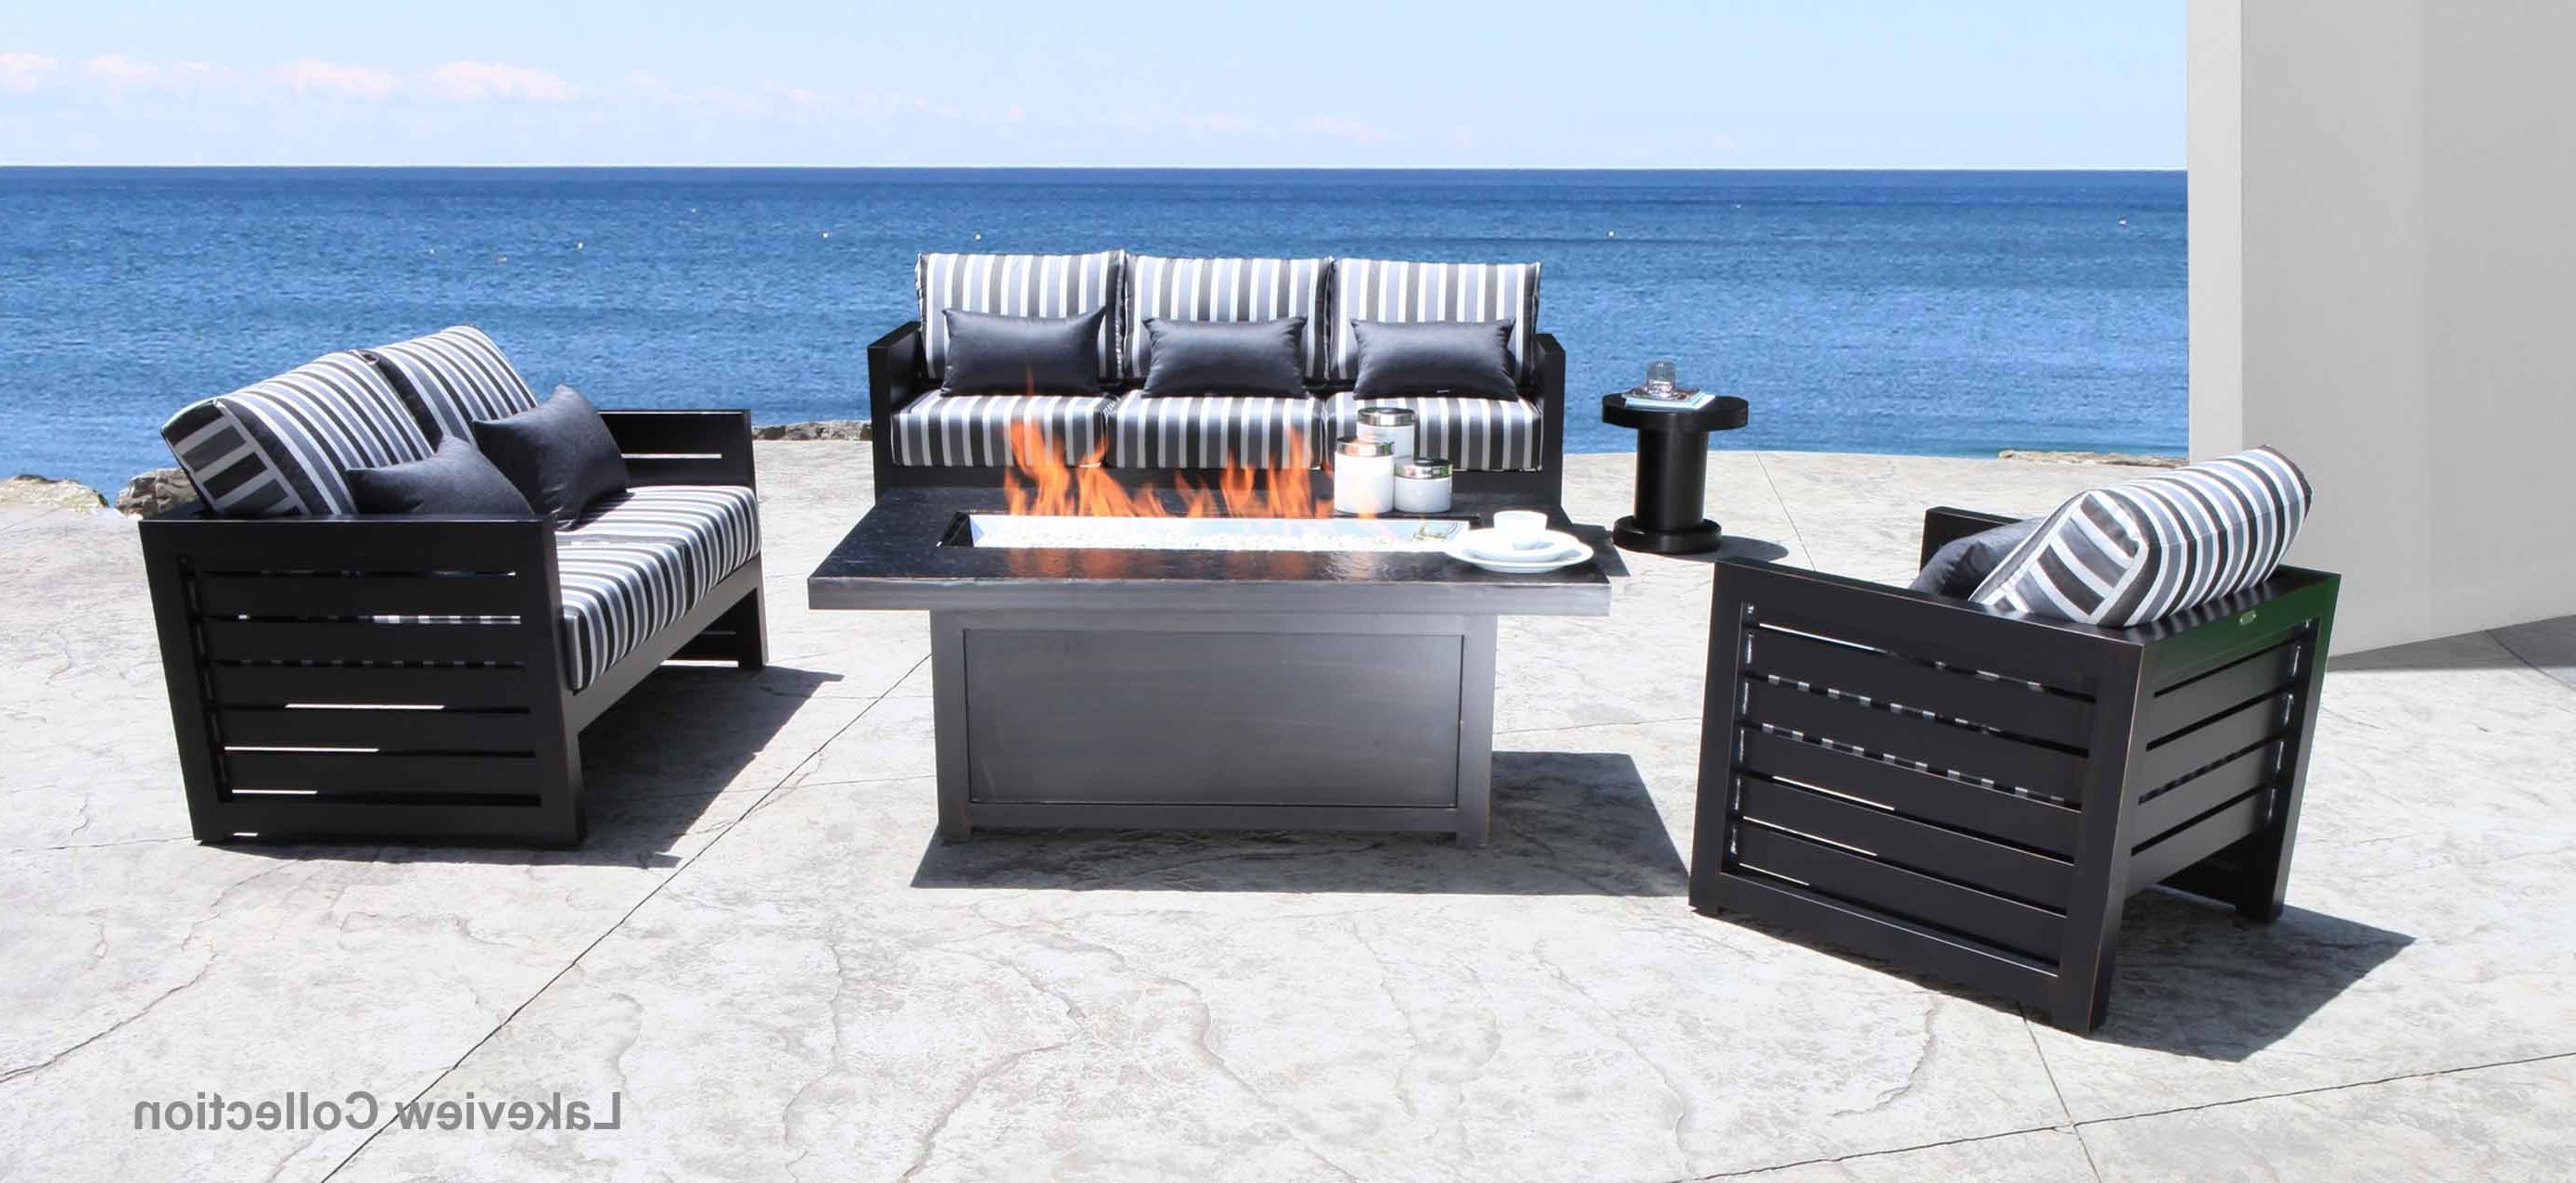 Shop Patio Furniture At Cabanacoast® Regarding Most Recently Released Modern Patio Conversation Sets (View 18 of 20)